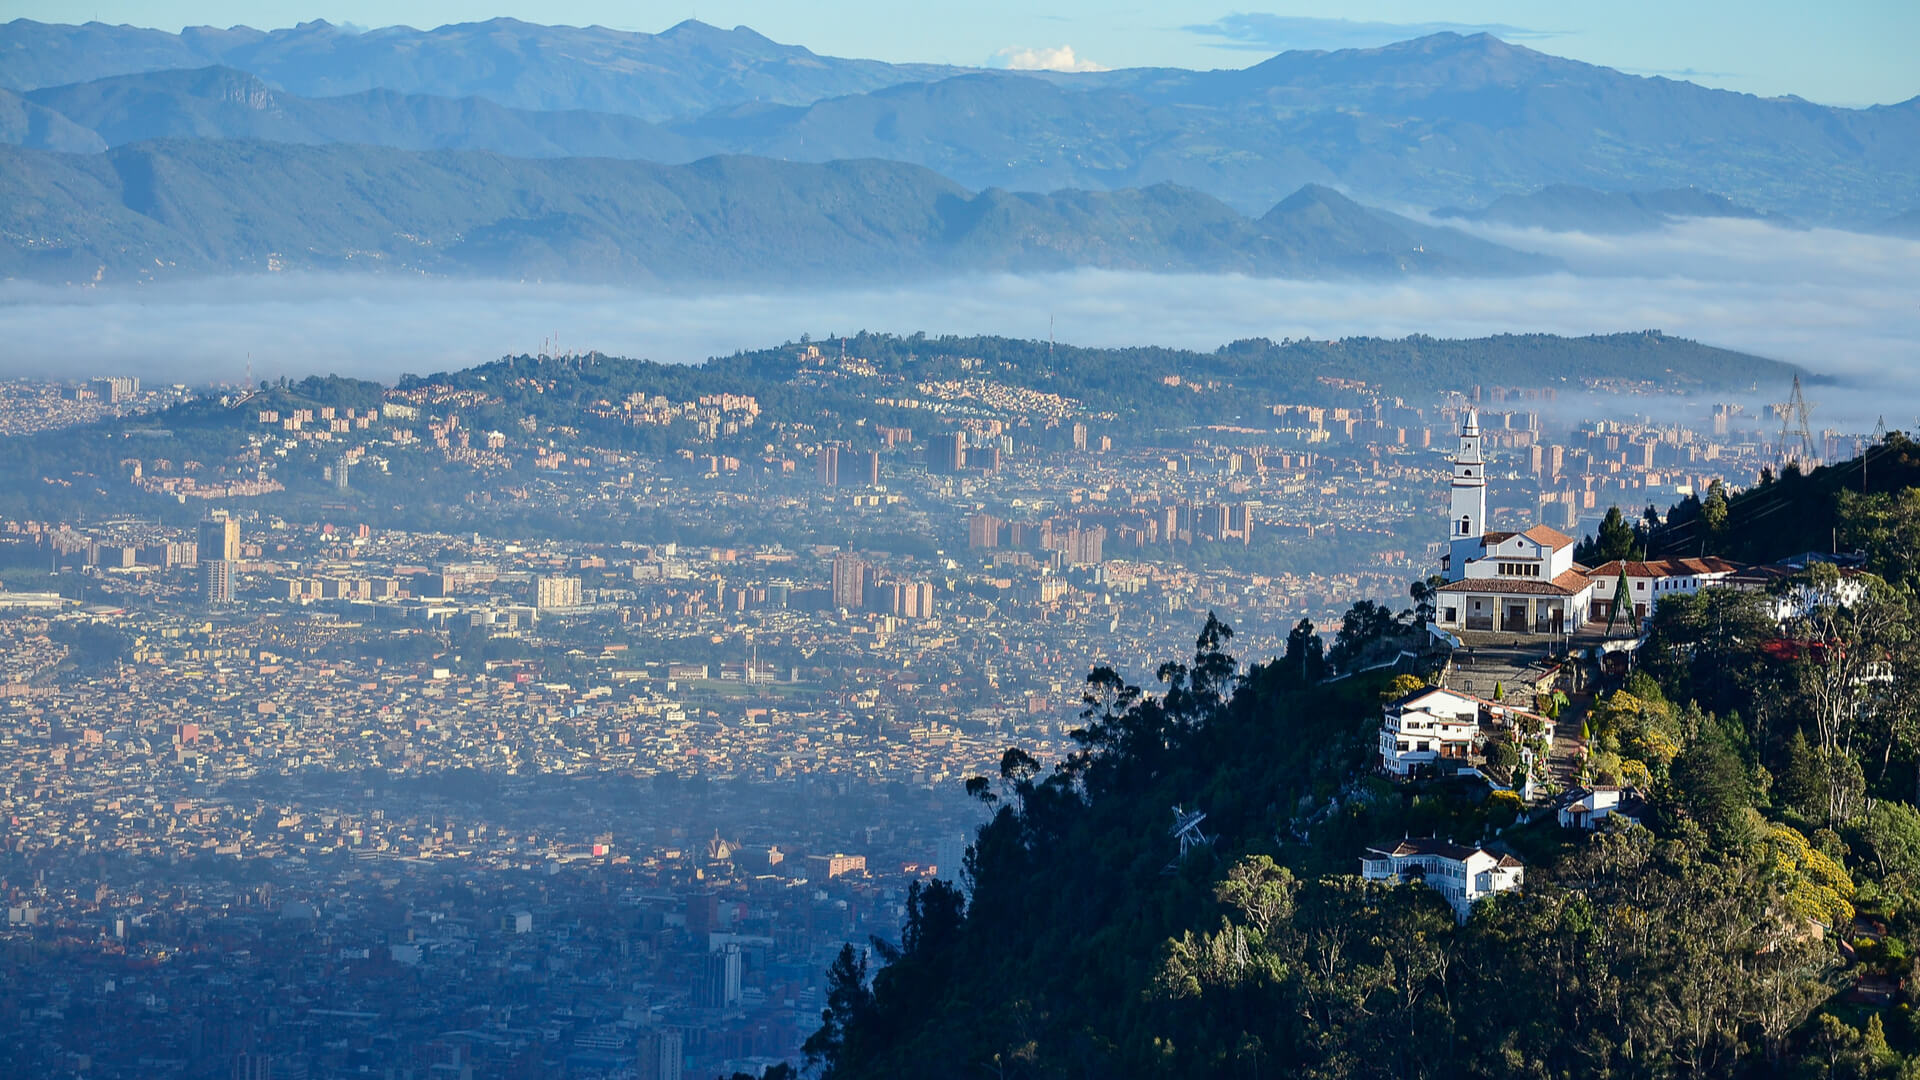 Aerial view of the city of Bogota in Columbia